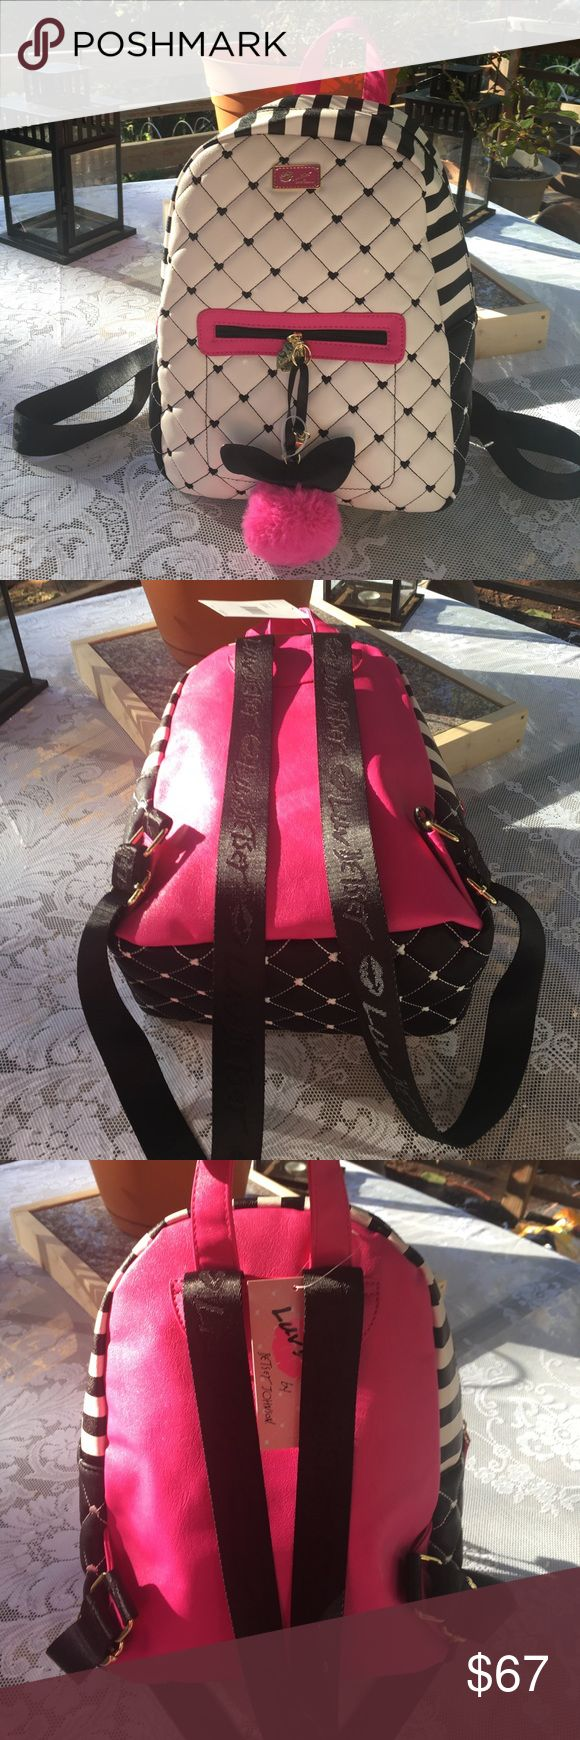 "New Betsy Johnson Backpack - not mini New adorable backpack.  Size is approx. 9 1/2"" length  by 12"" height by 4 1/2"" wide. Betsey Johnson Bags Backpacks"